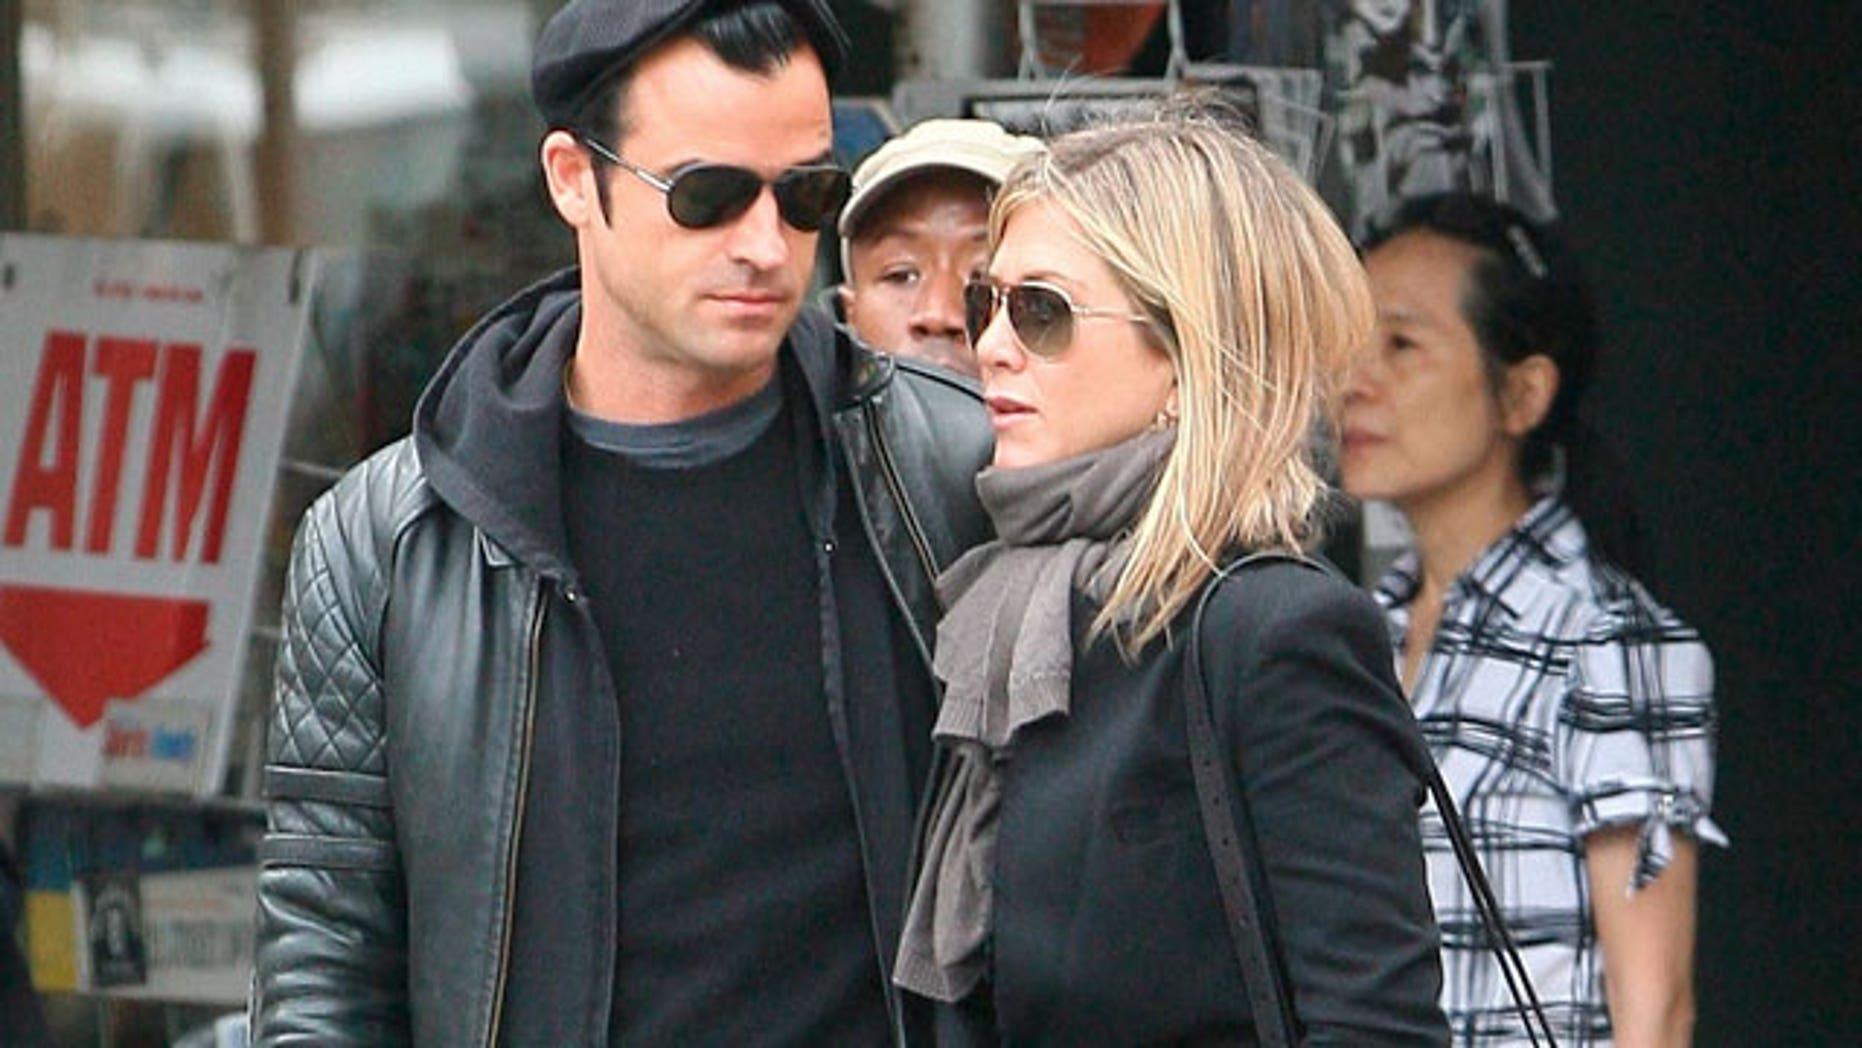 Justin Theroux and Jennifer Aniston in New York City.